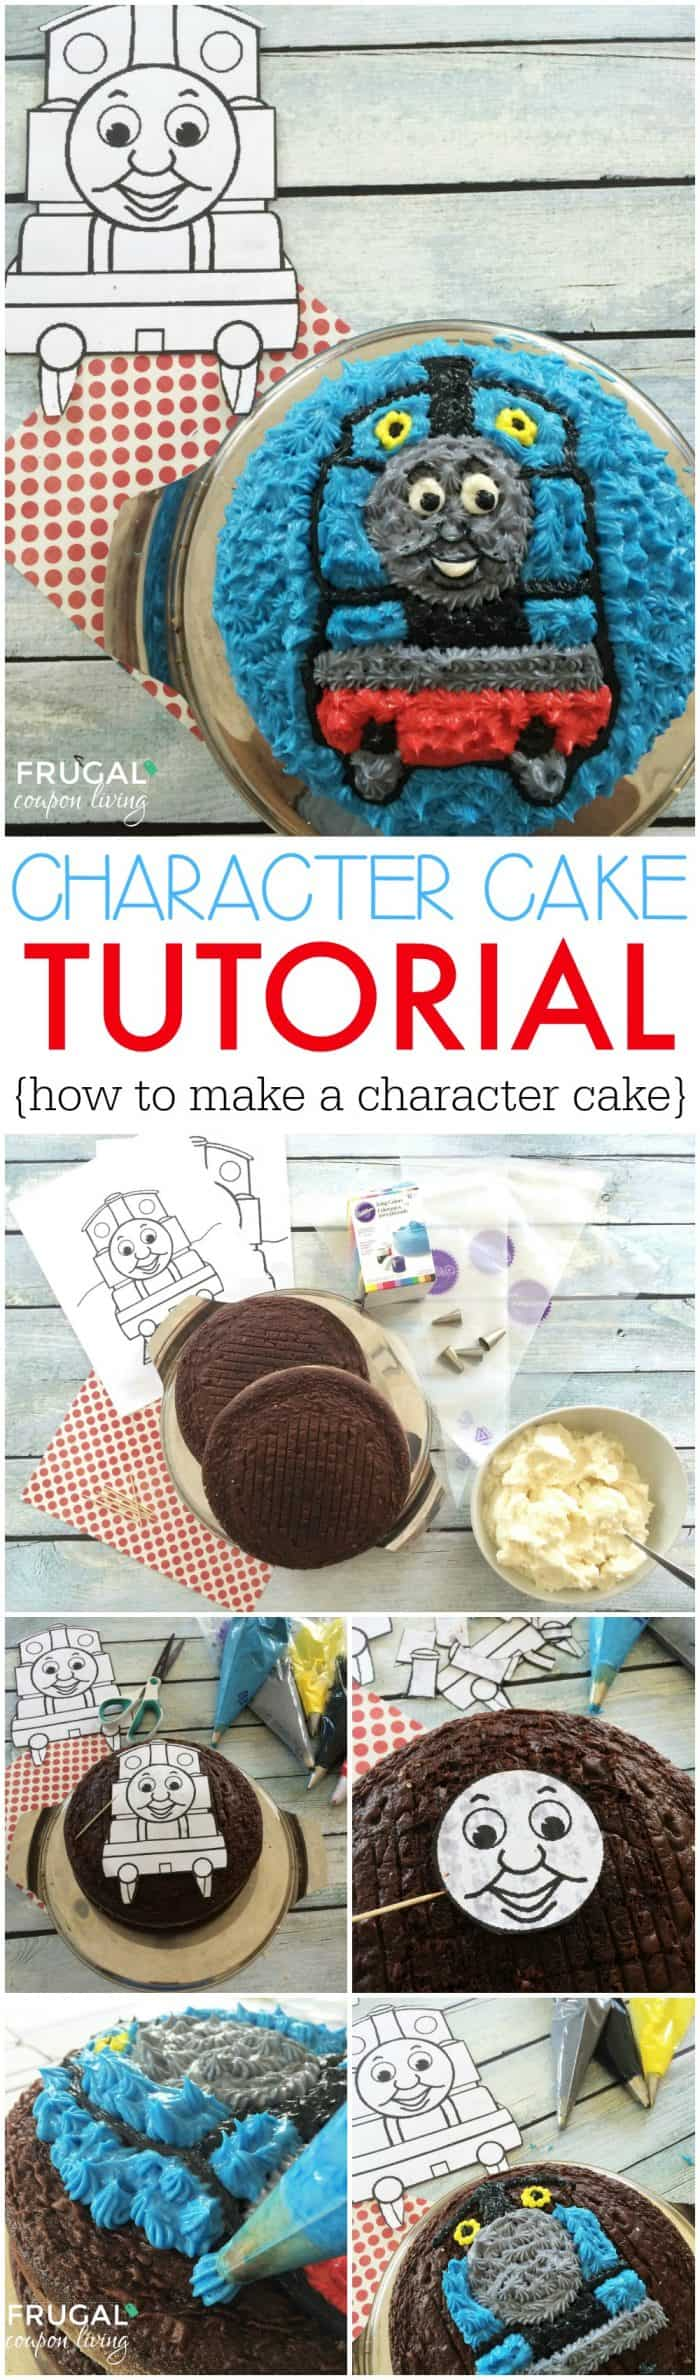 character-cake-tutorial-long-collage-frugal-coupon-living